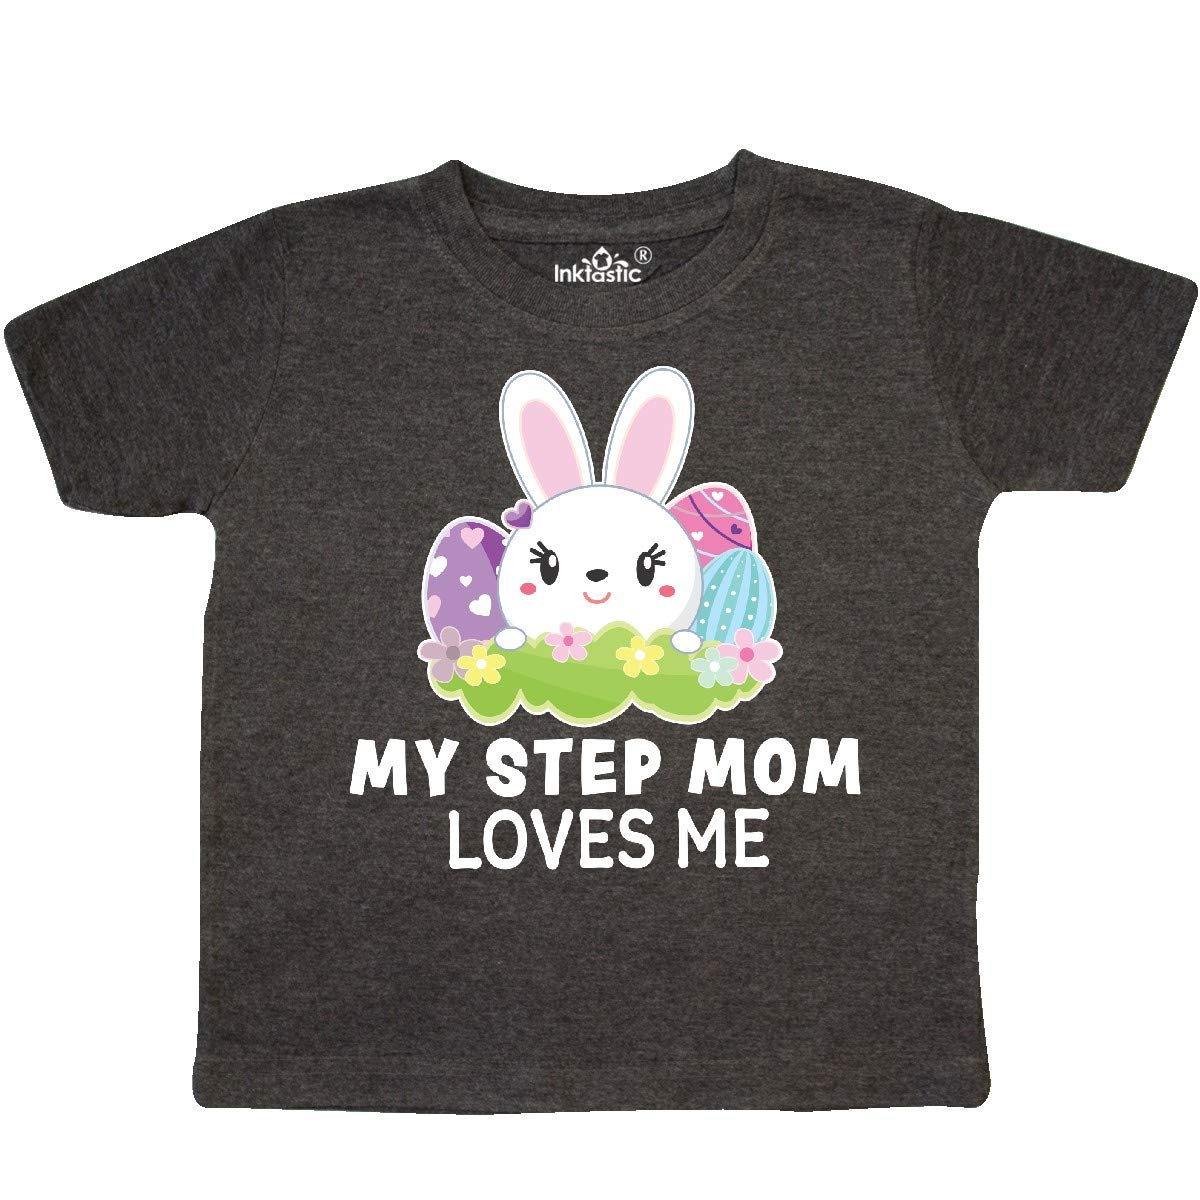 inktastic My Grandma Loves Me with Bunny and Easter Eggs Baby T-Shirt